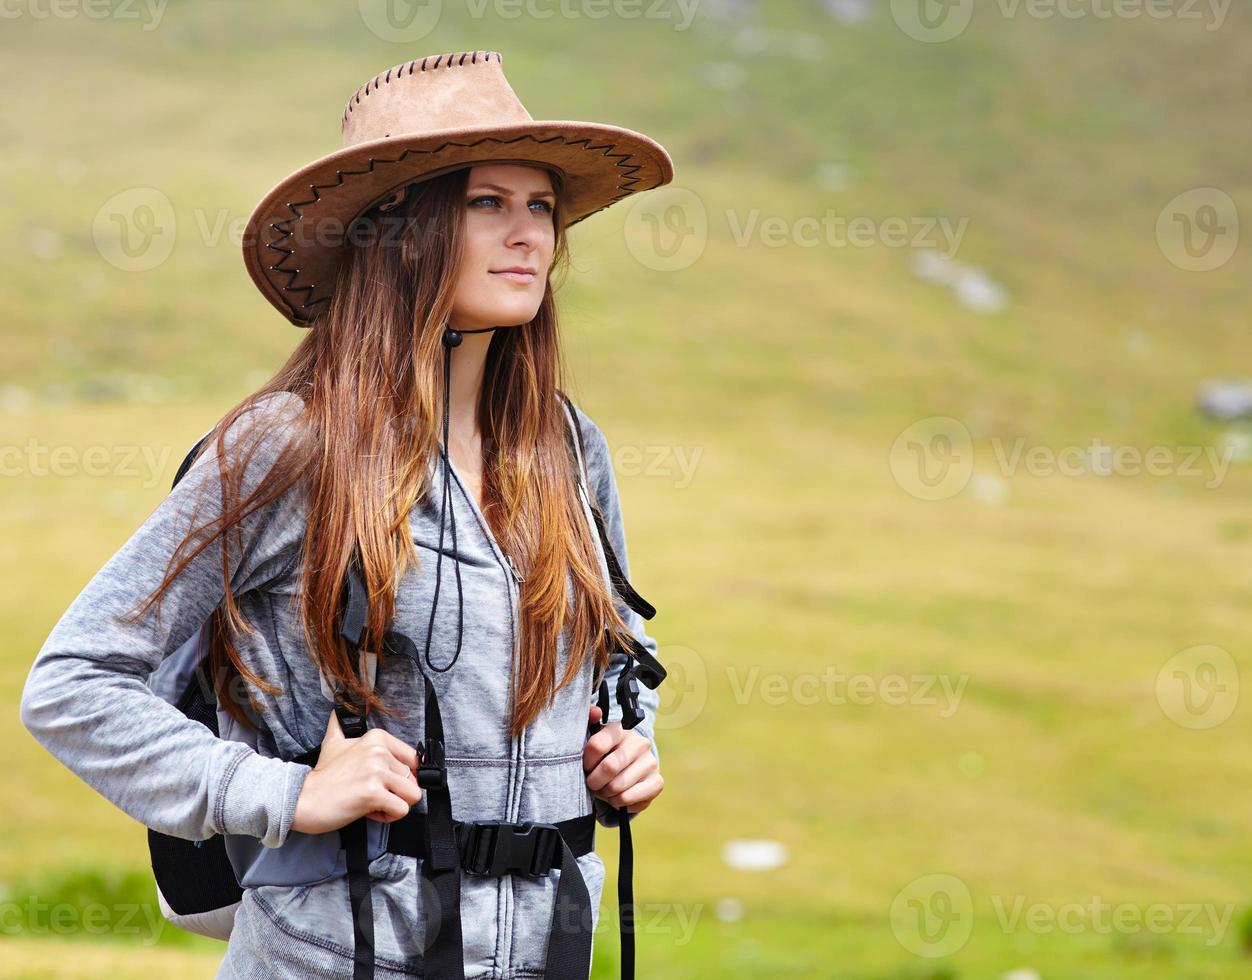 Female hiker with backpack and hat photo